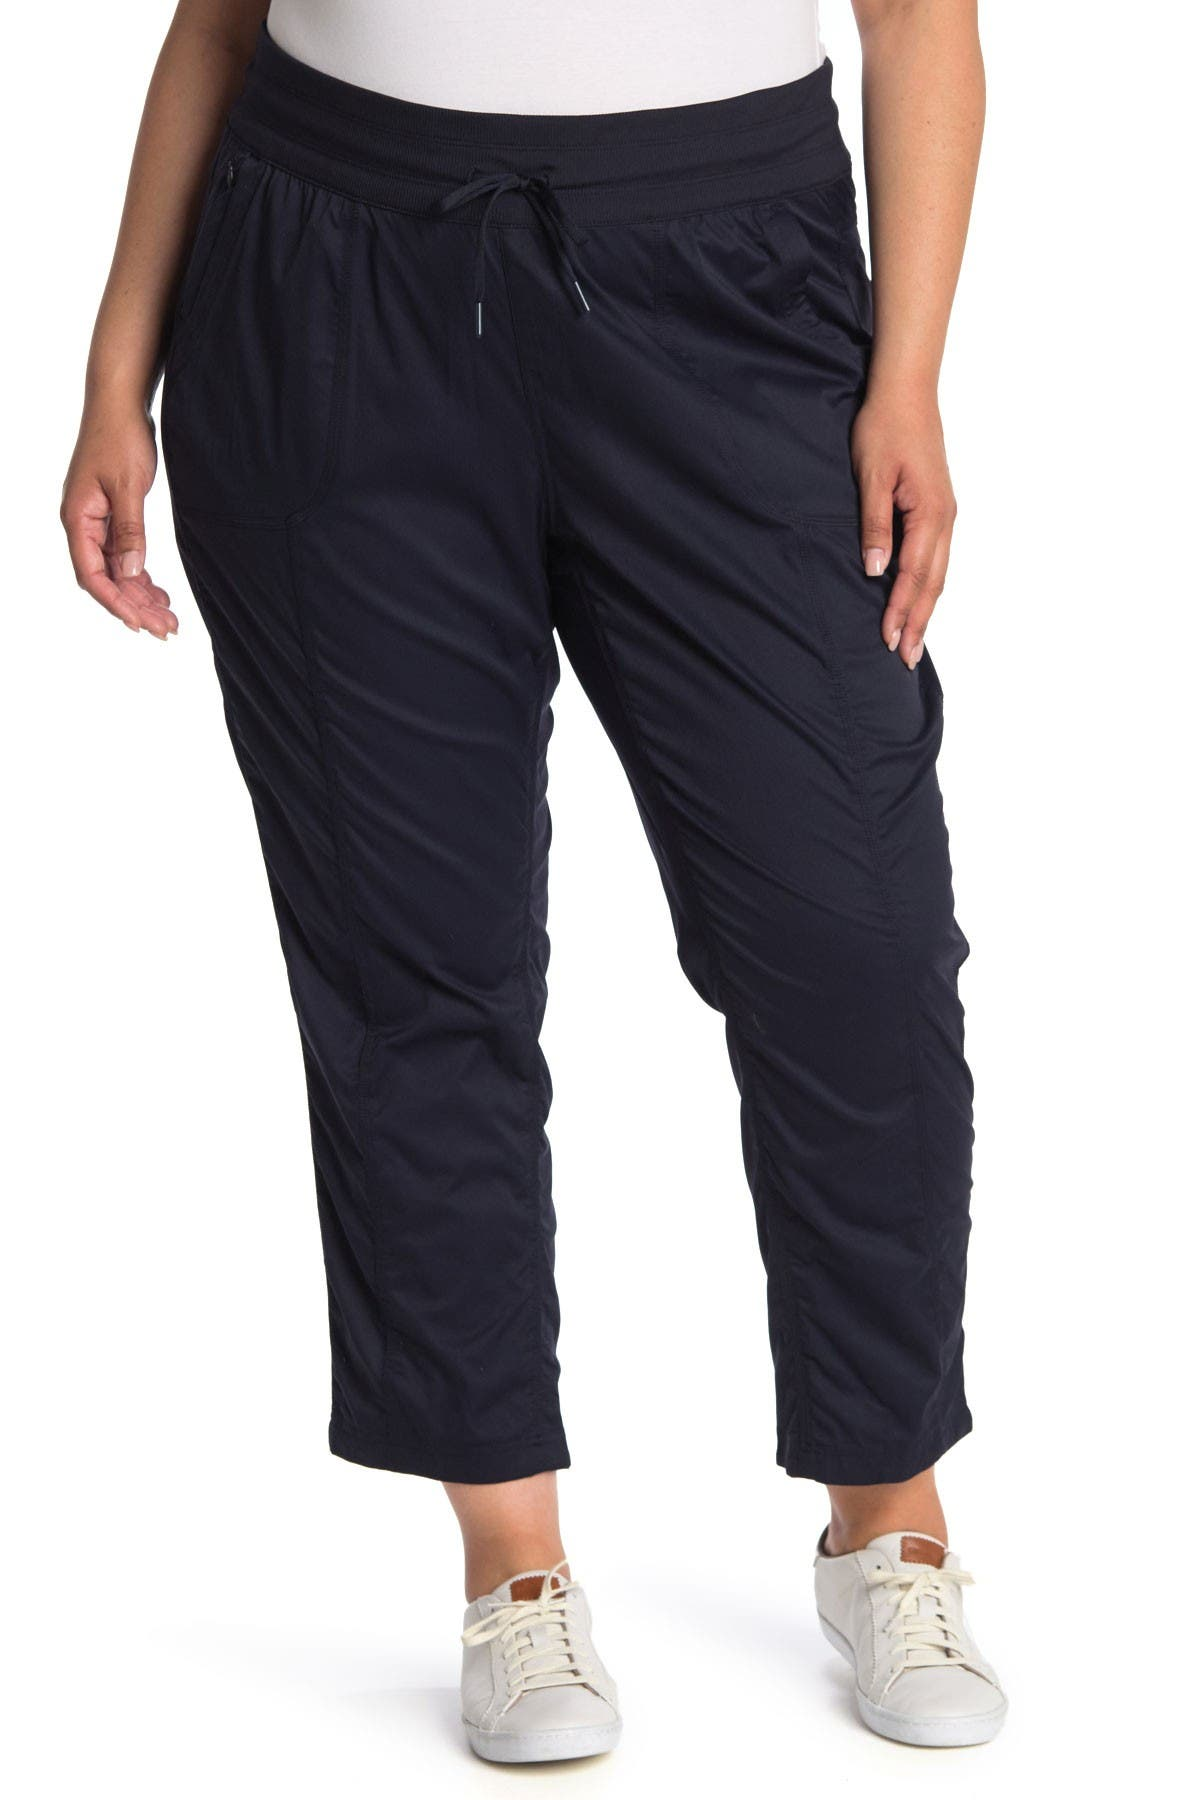 Image of The North Face Aphrodite Motion Pants